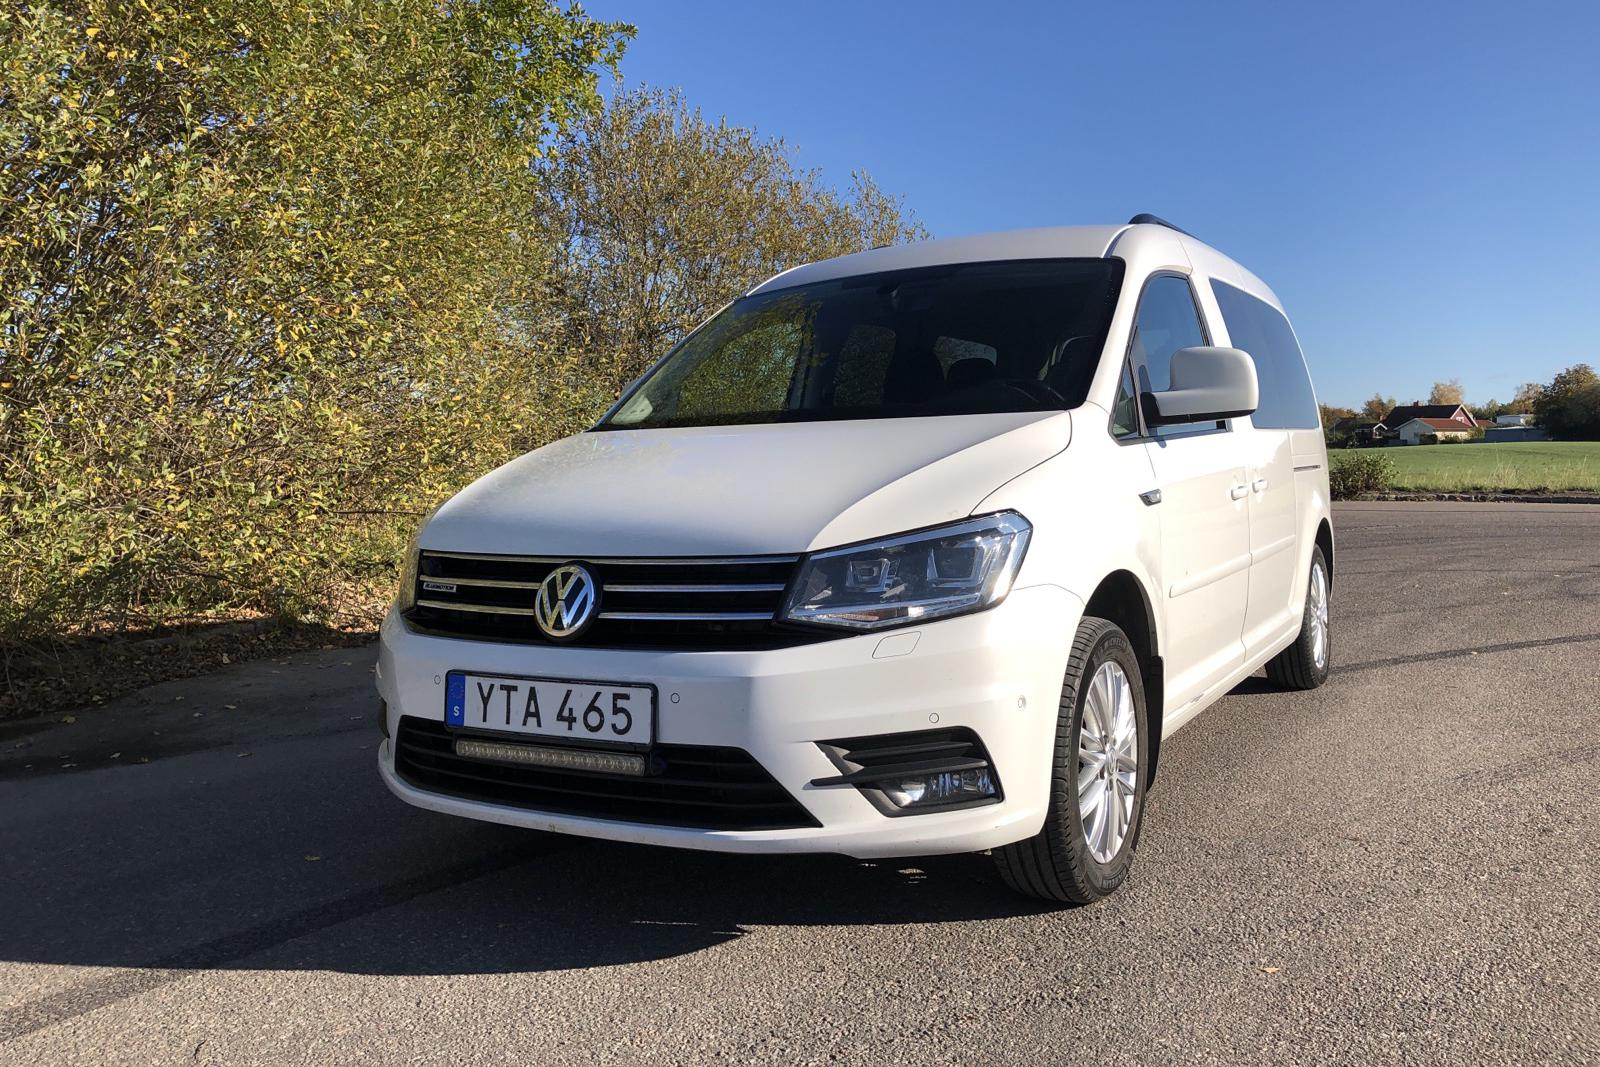 VW Caddy MPV Maxi  Life 1.4 TGI (110hk) - 0 km - Automatic - white - 2018